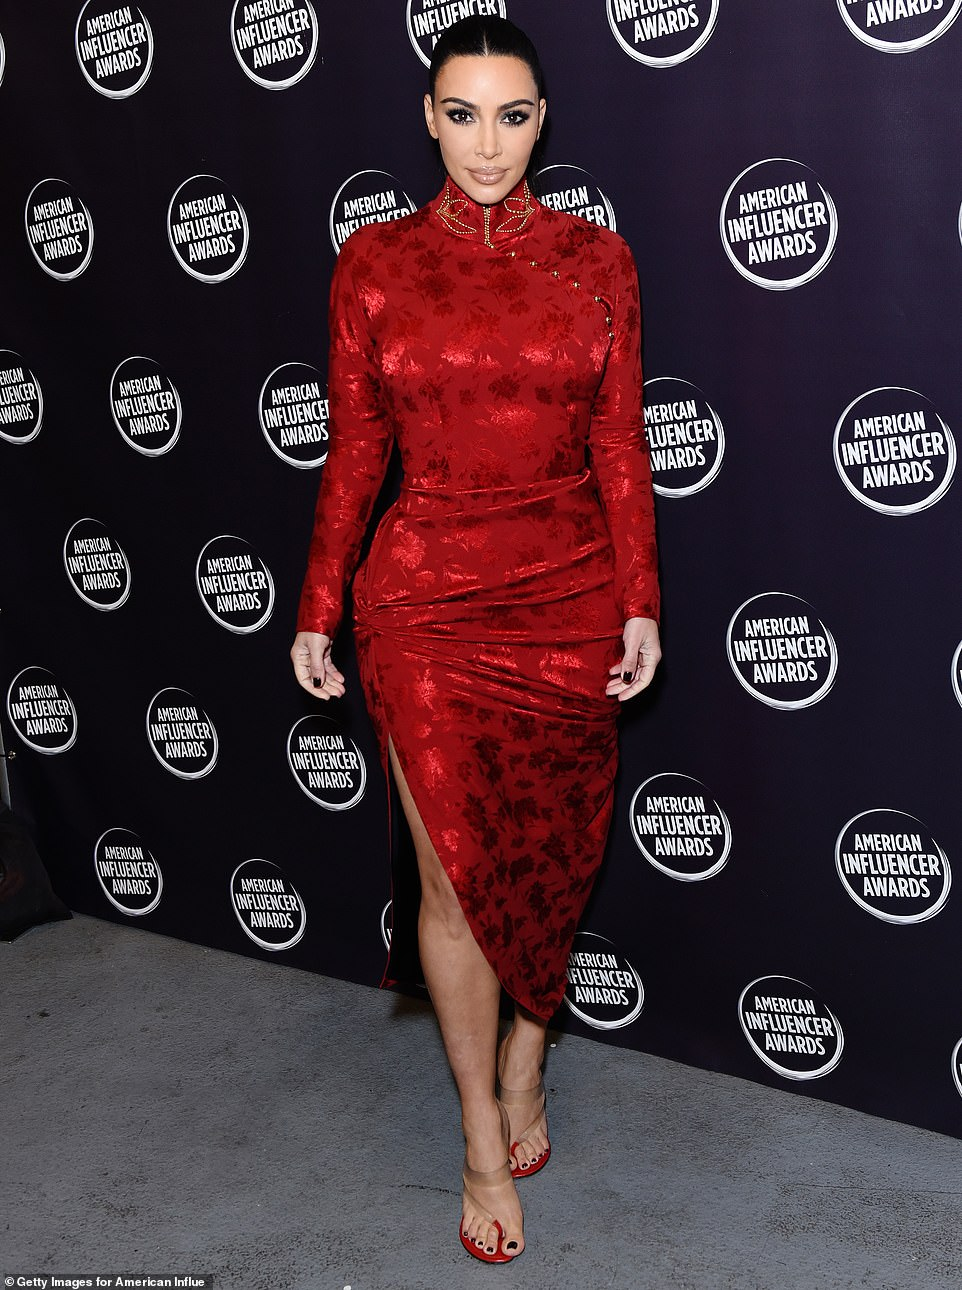 kim-kardashian-in-vintage-christian-dior-2019-annual-american-influencer-awards